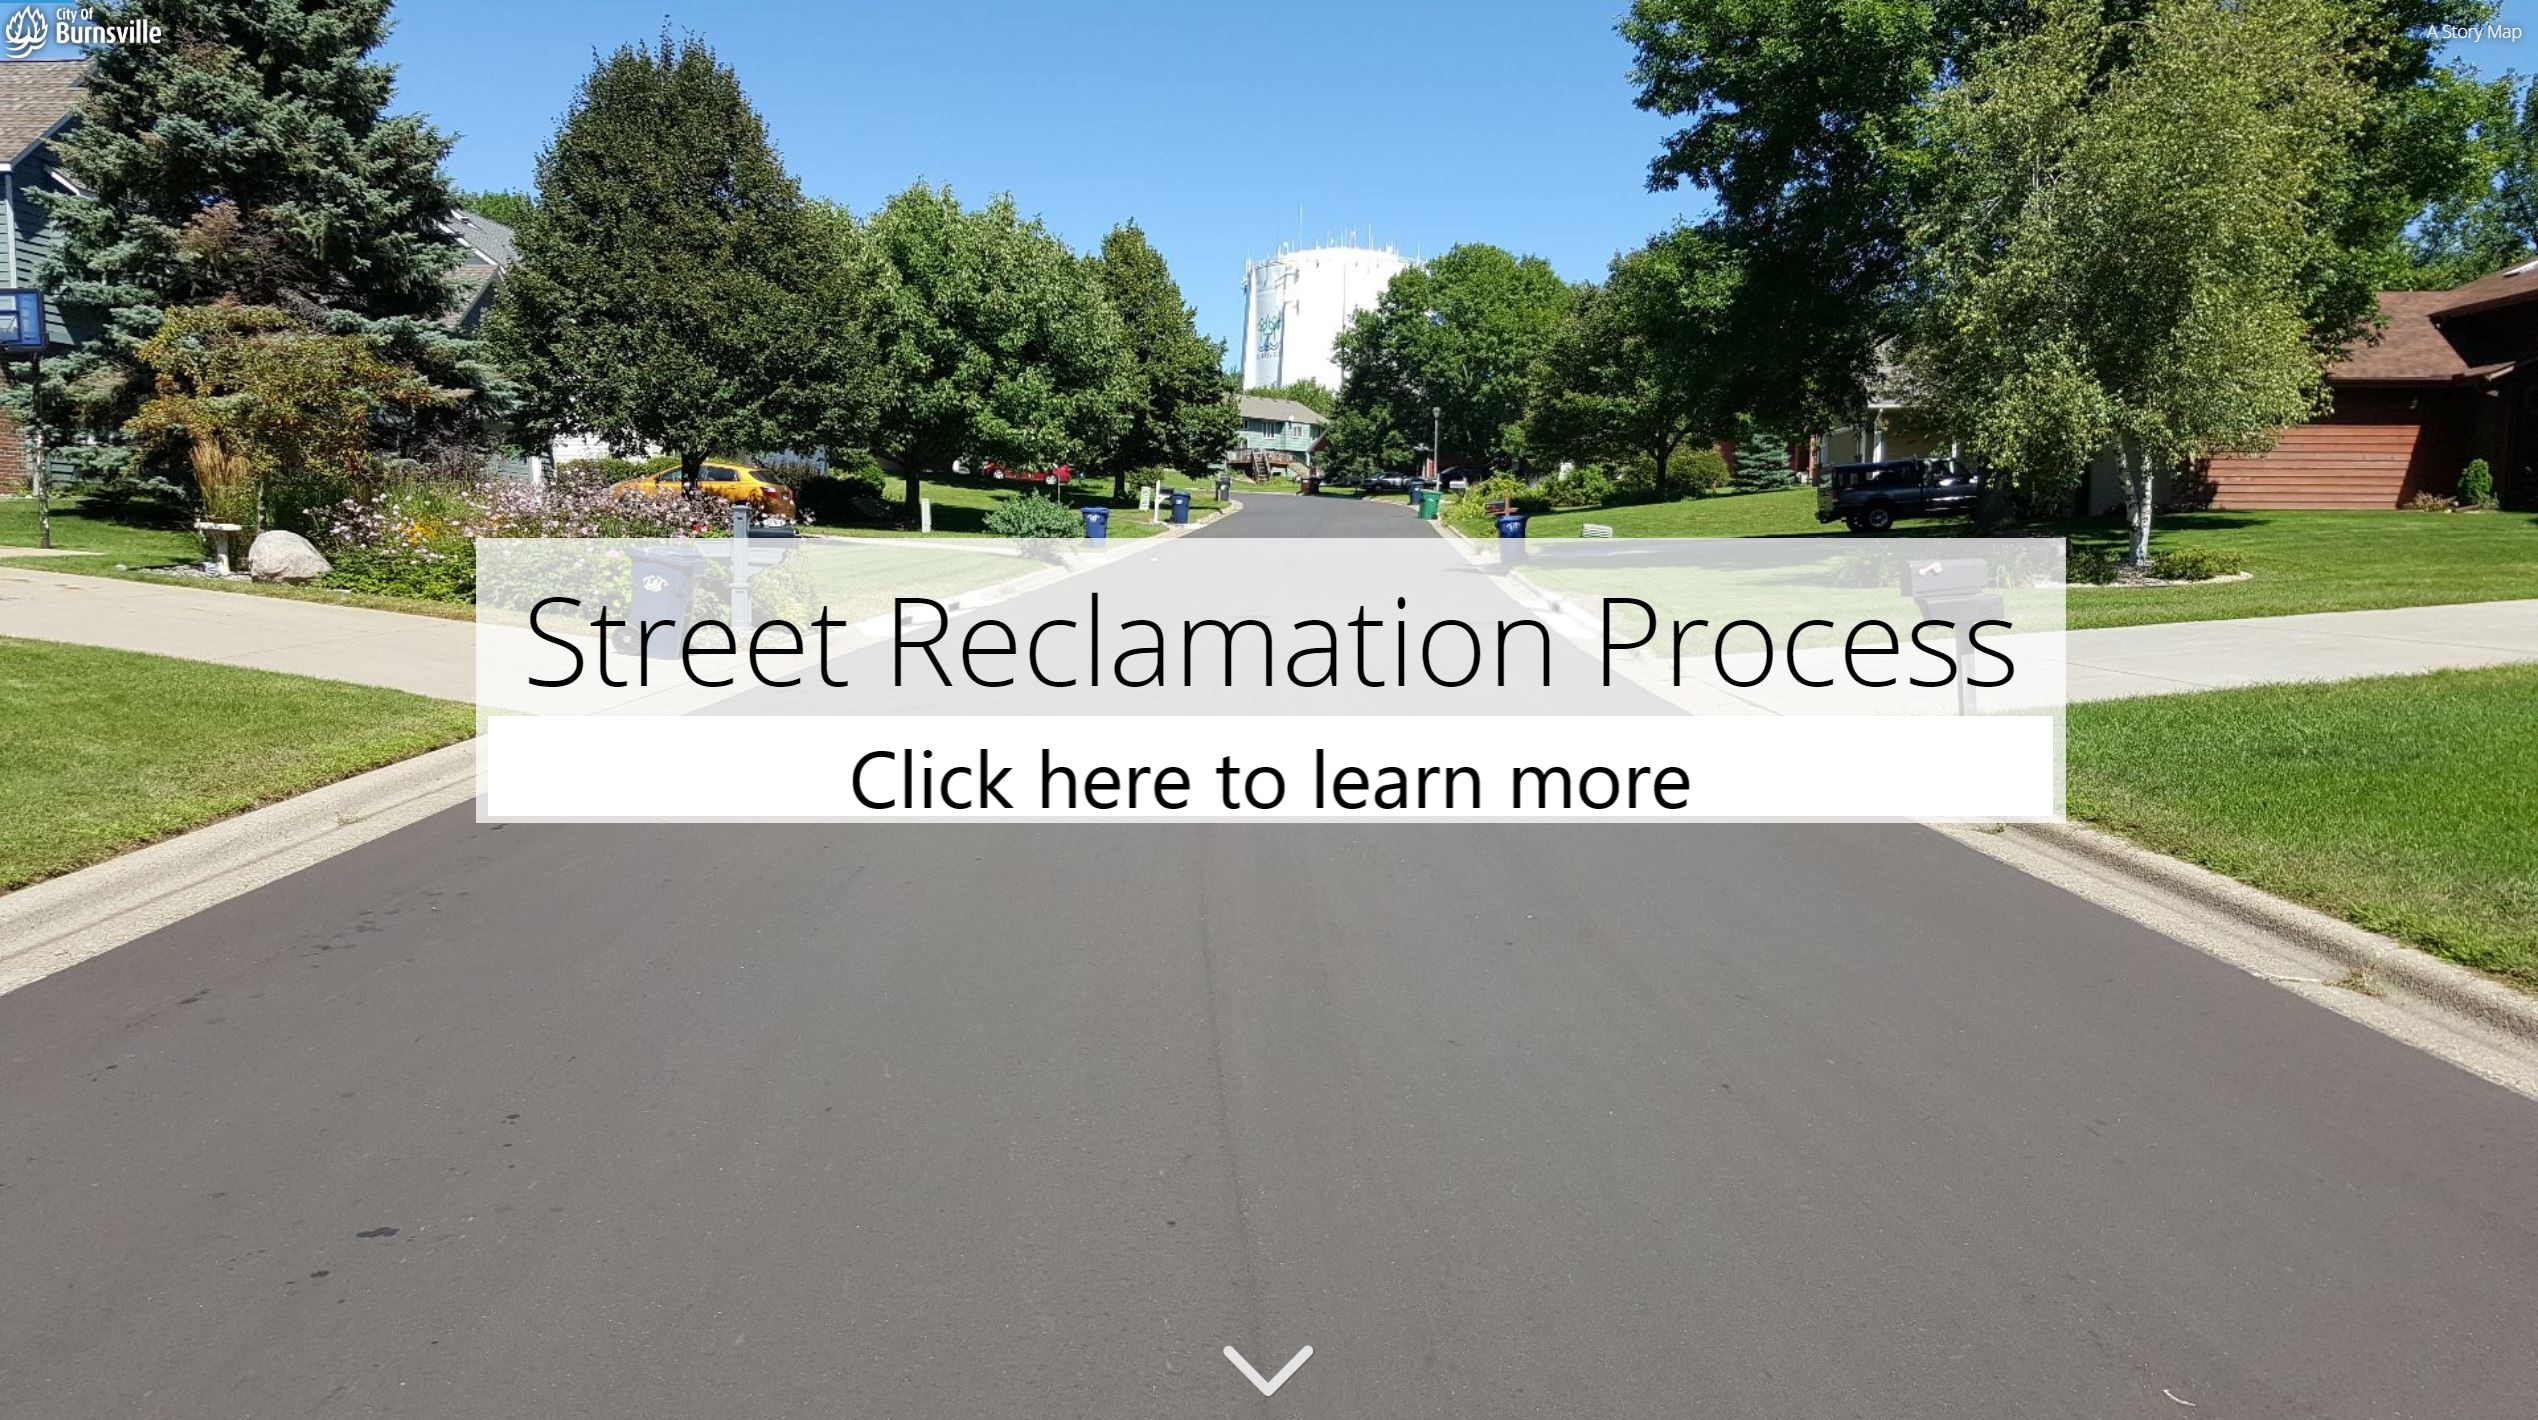 Click here to learn more about the street reclamation process Opens in new window